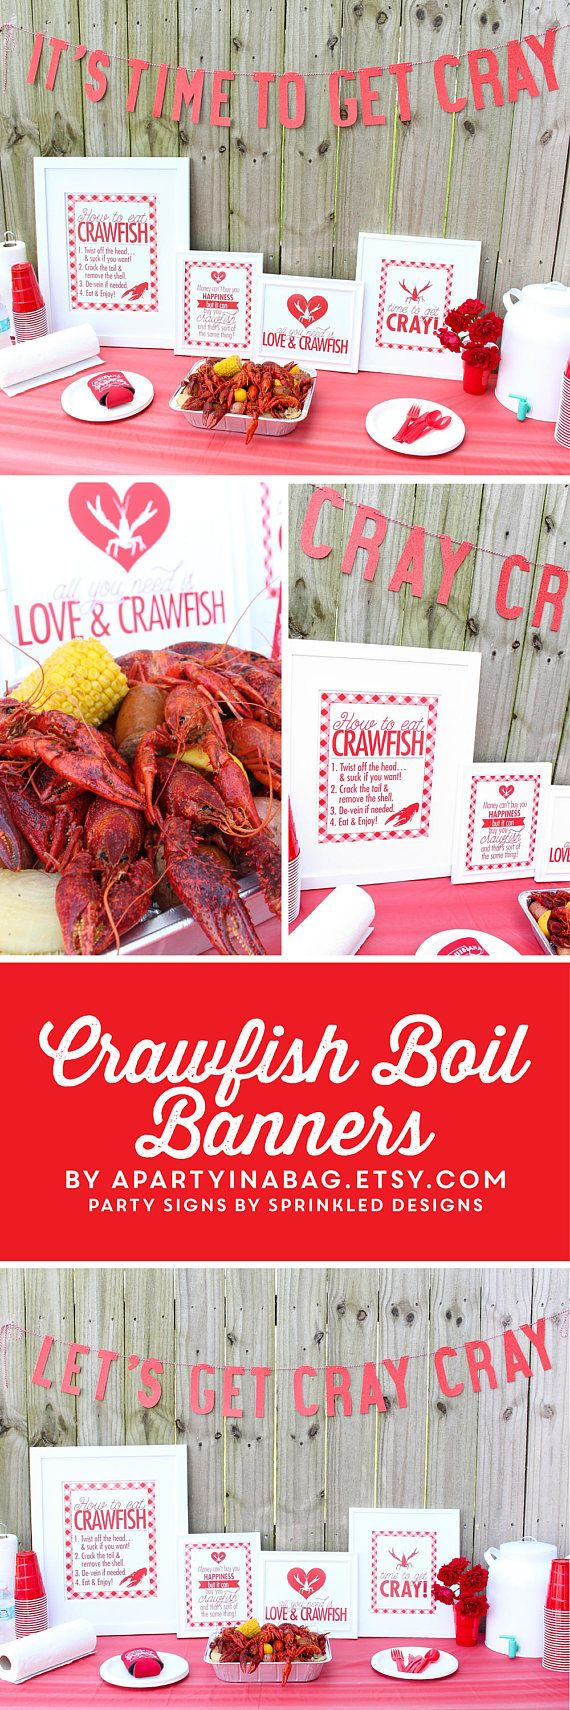 CRAWFISH BOIL It\'s Time To Get Cray Crawfish Boil | Louisiana ...